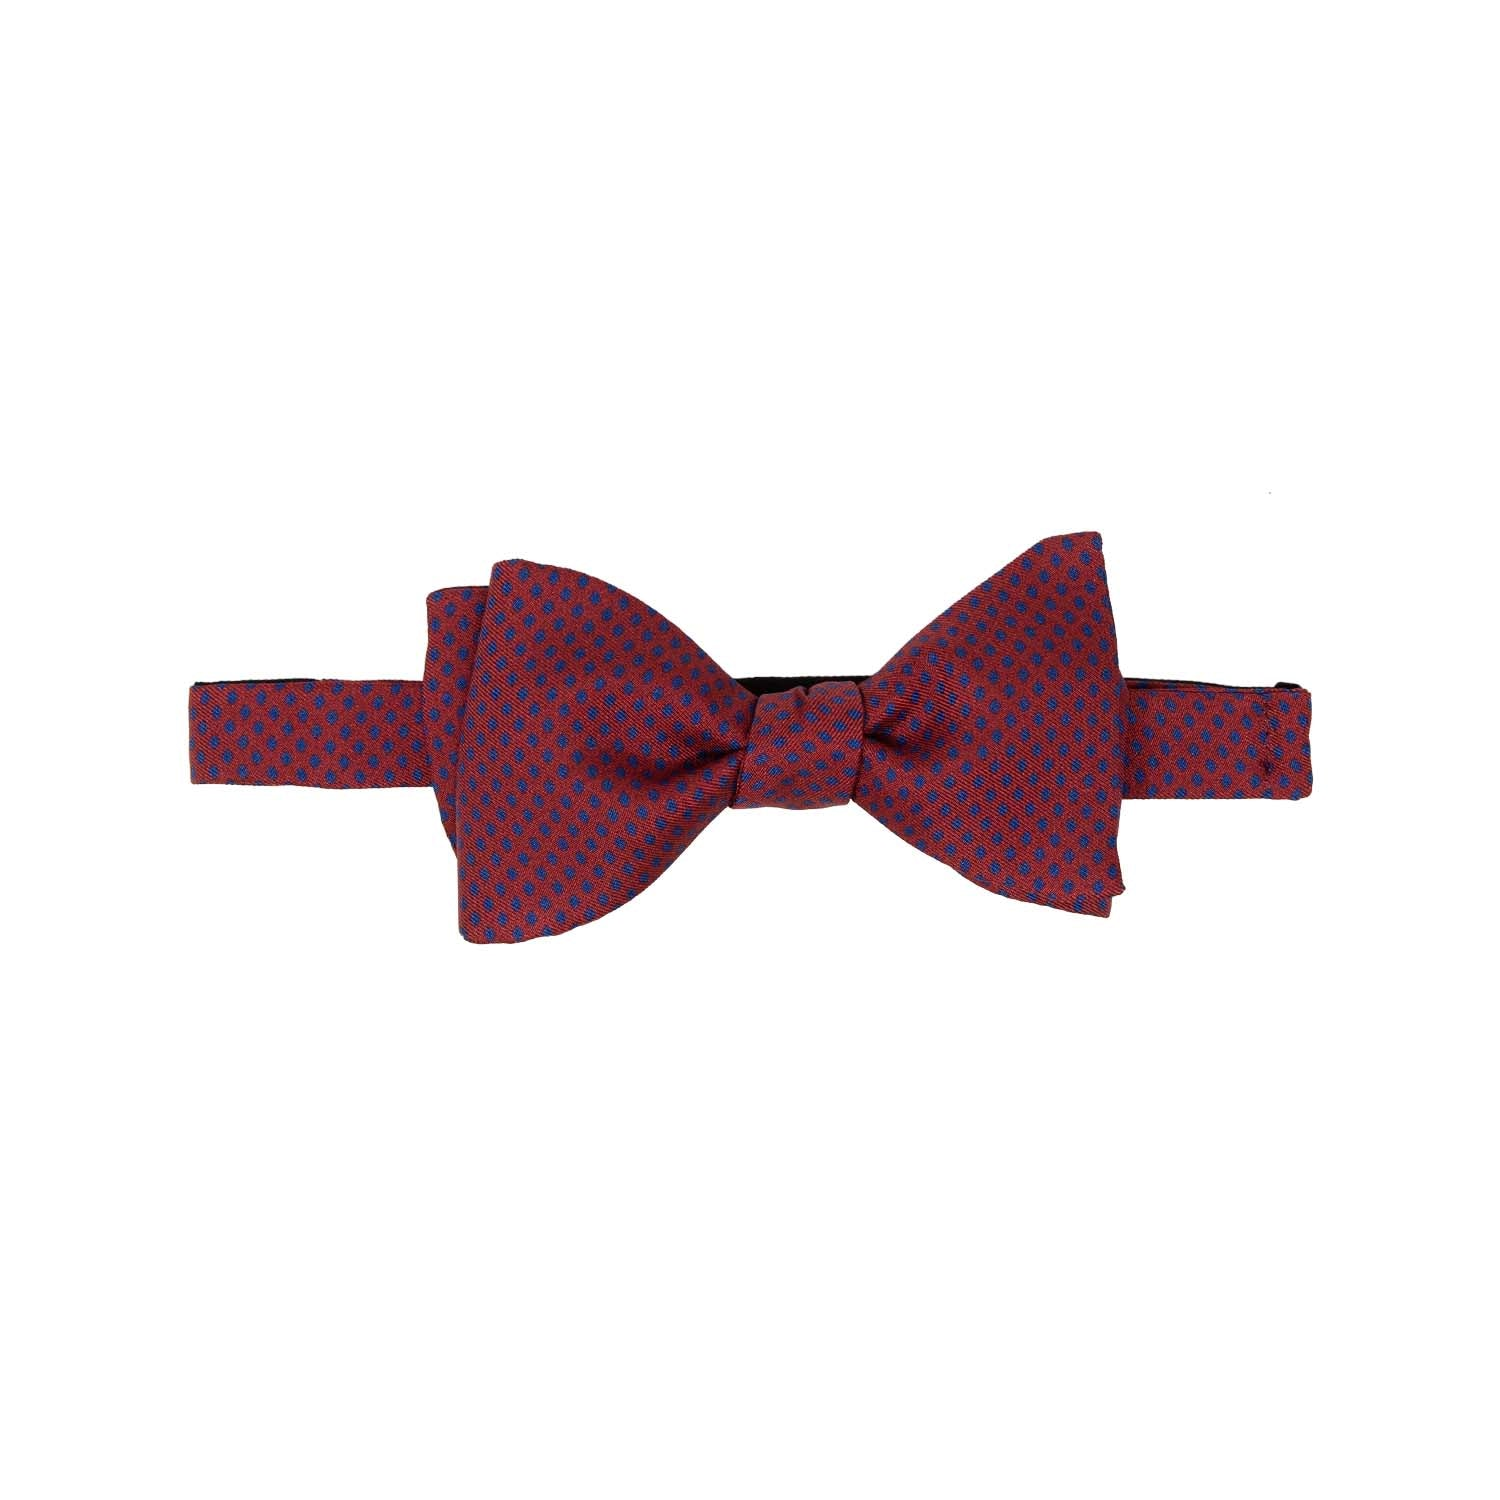 serà fine silk - Red with Blue Dots Self-Tie Silk Bow Tie